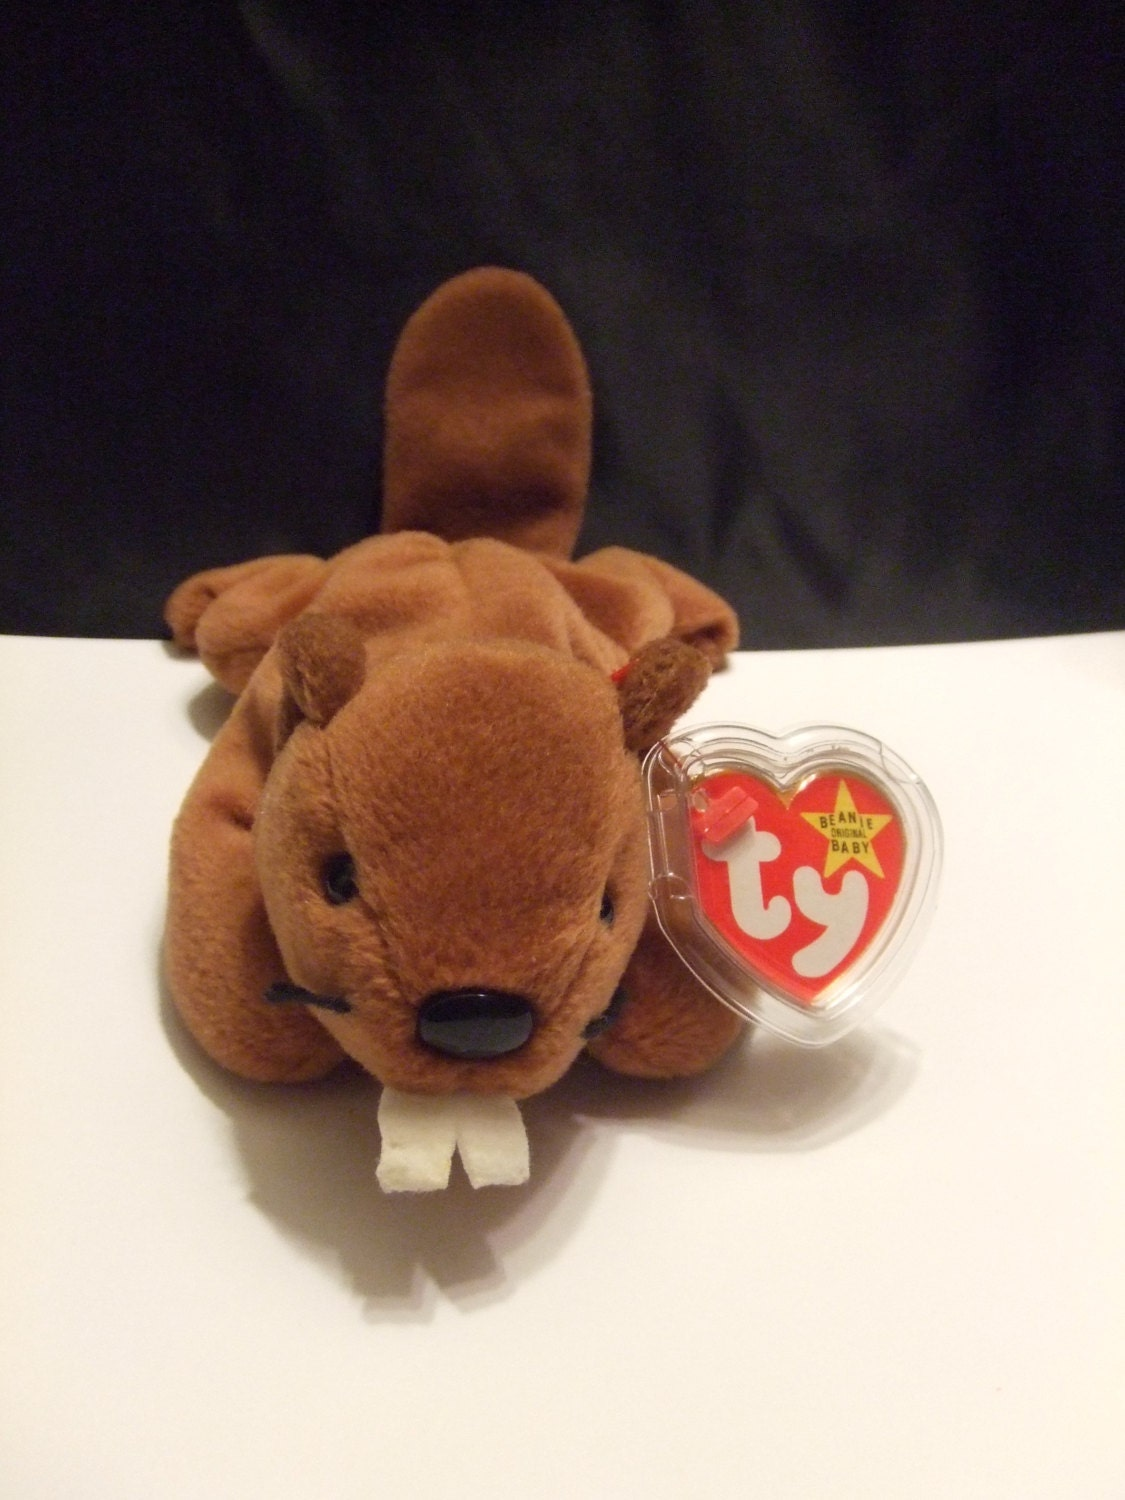 bucky the beaver beanie babies collection original 4016. Black Bedroom Furniture Sets. Home Design Ideas